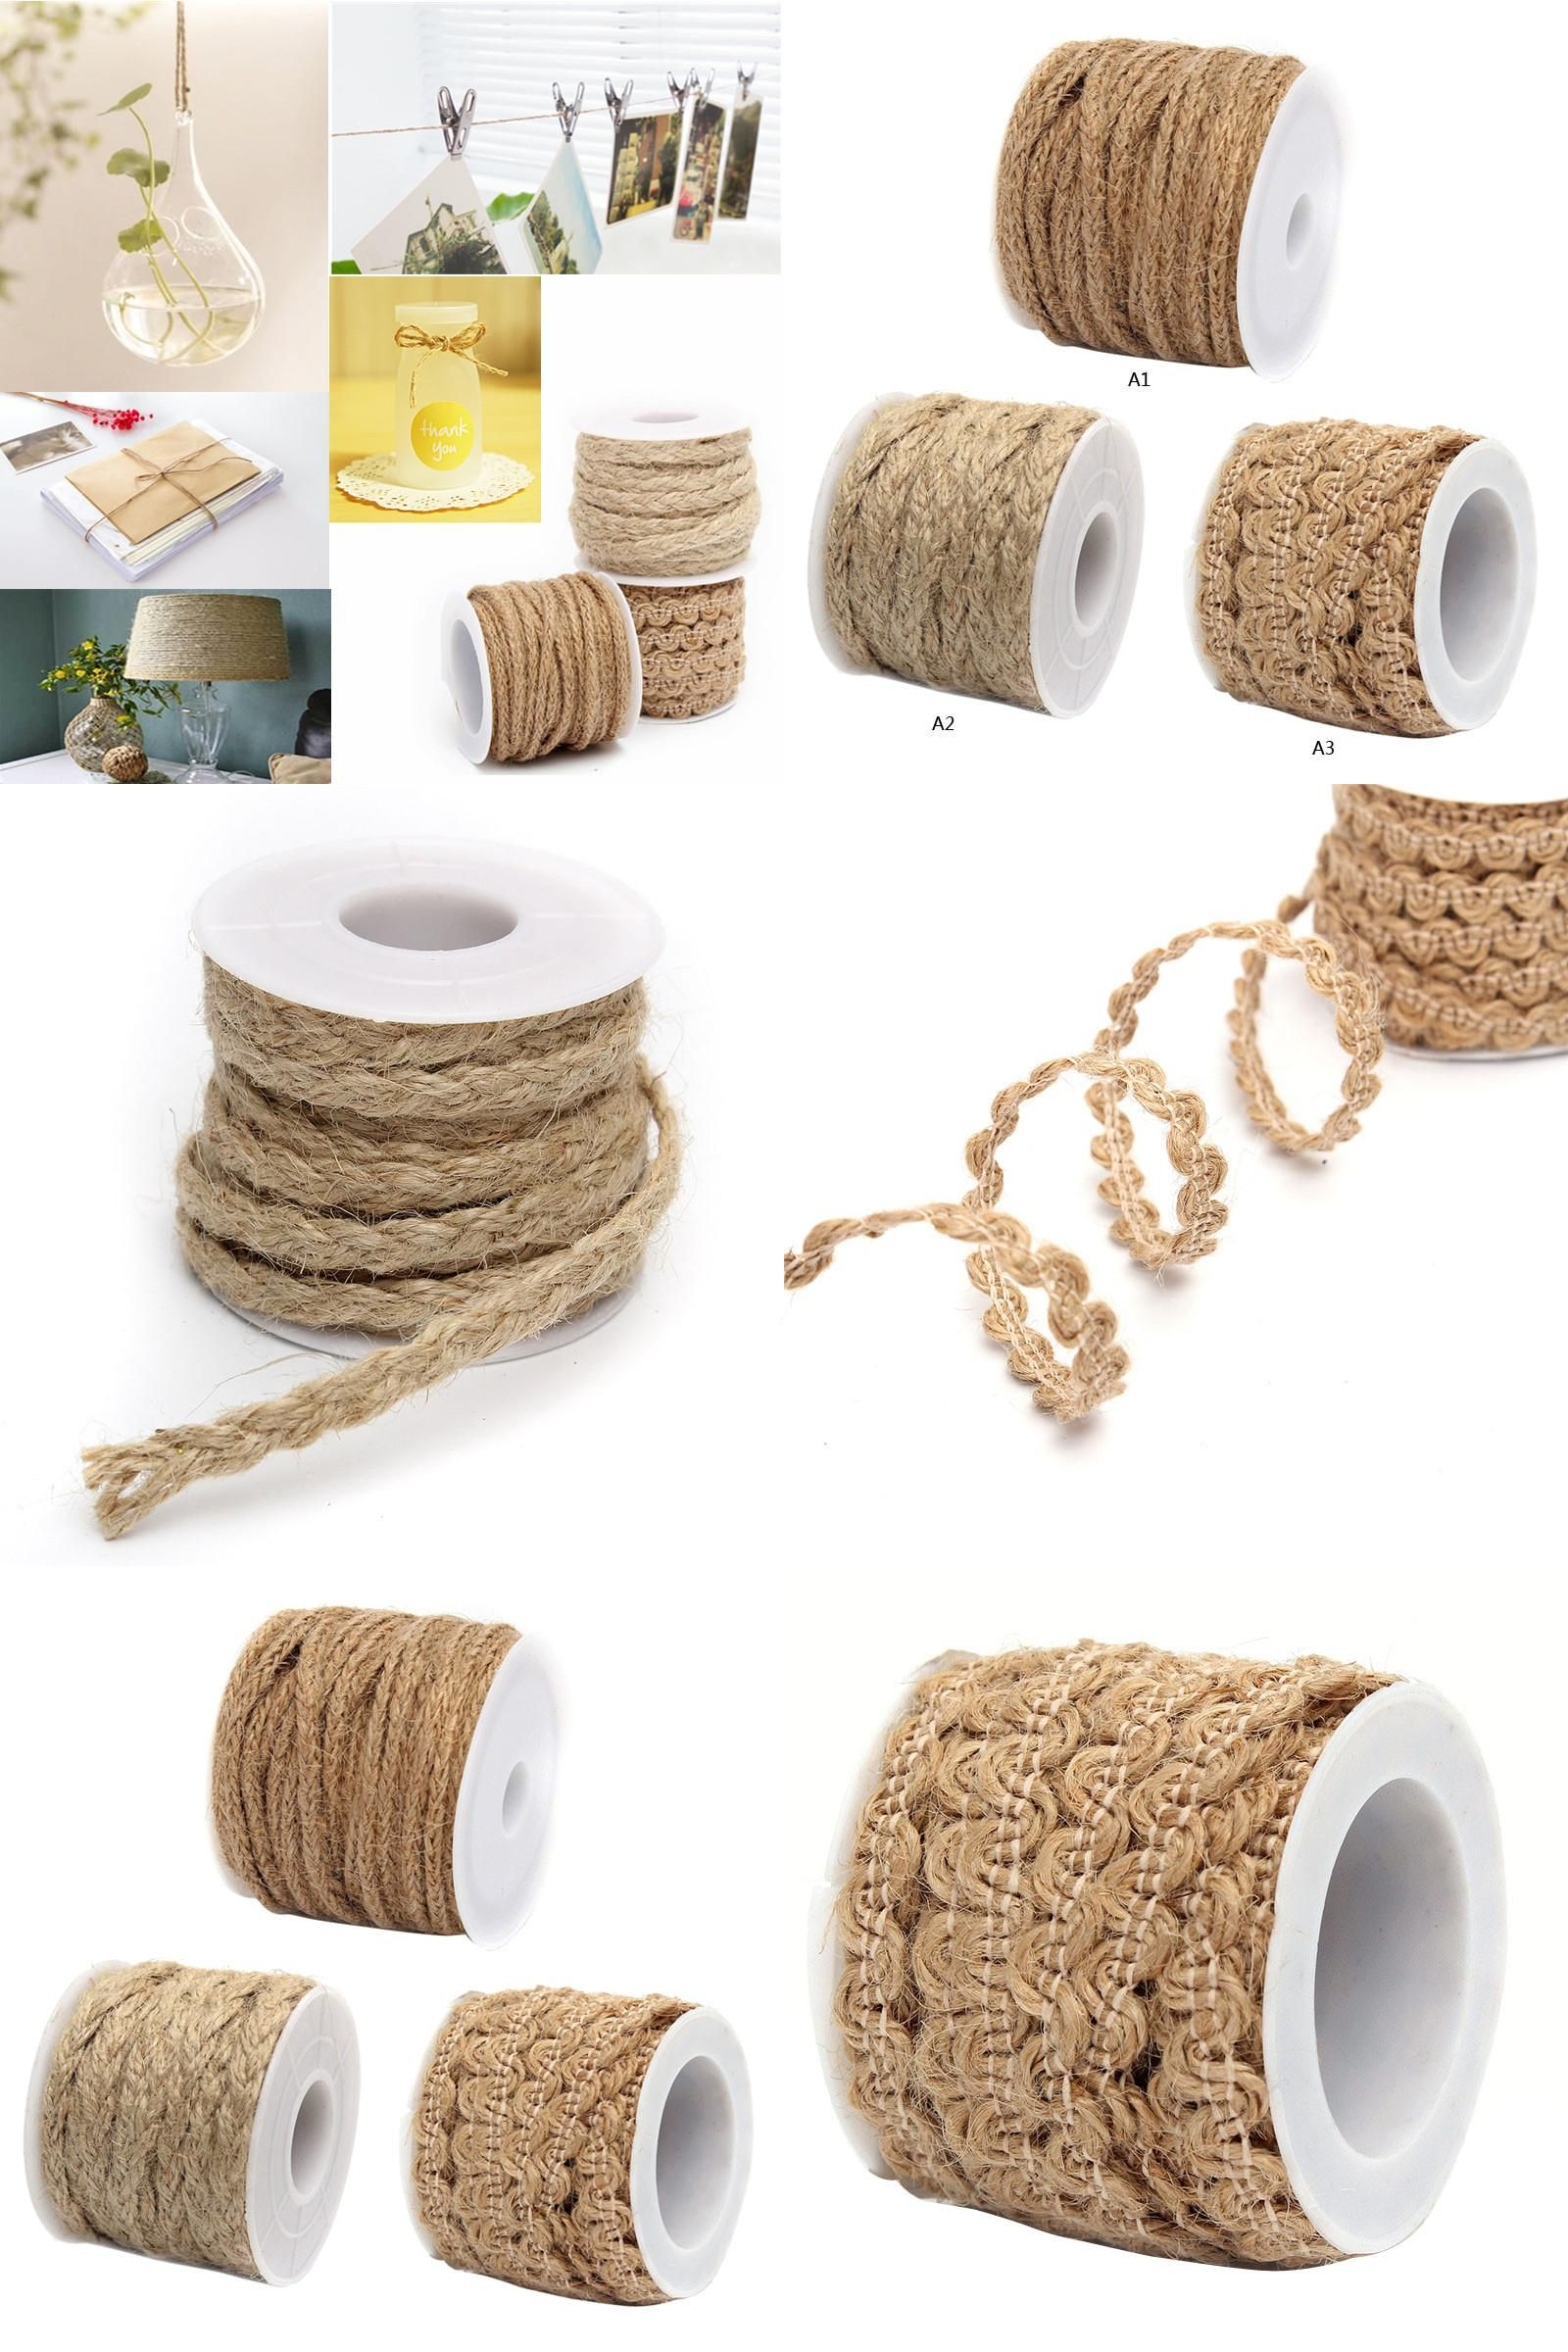 Banners, Streamers & Confetti 1 Roll 5m Natural Hessian Jute Twine Rope Burlap Ribbon Diy Craft Vintage Wedding Party Birthday Decor Festive & Party Supplies